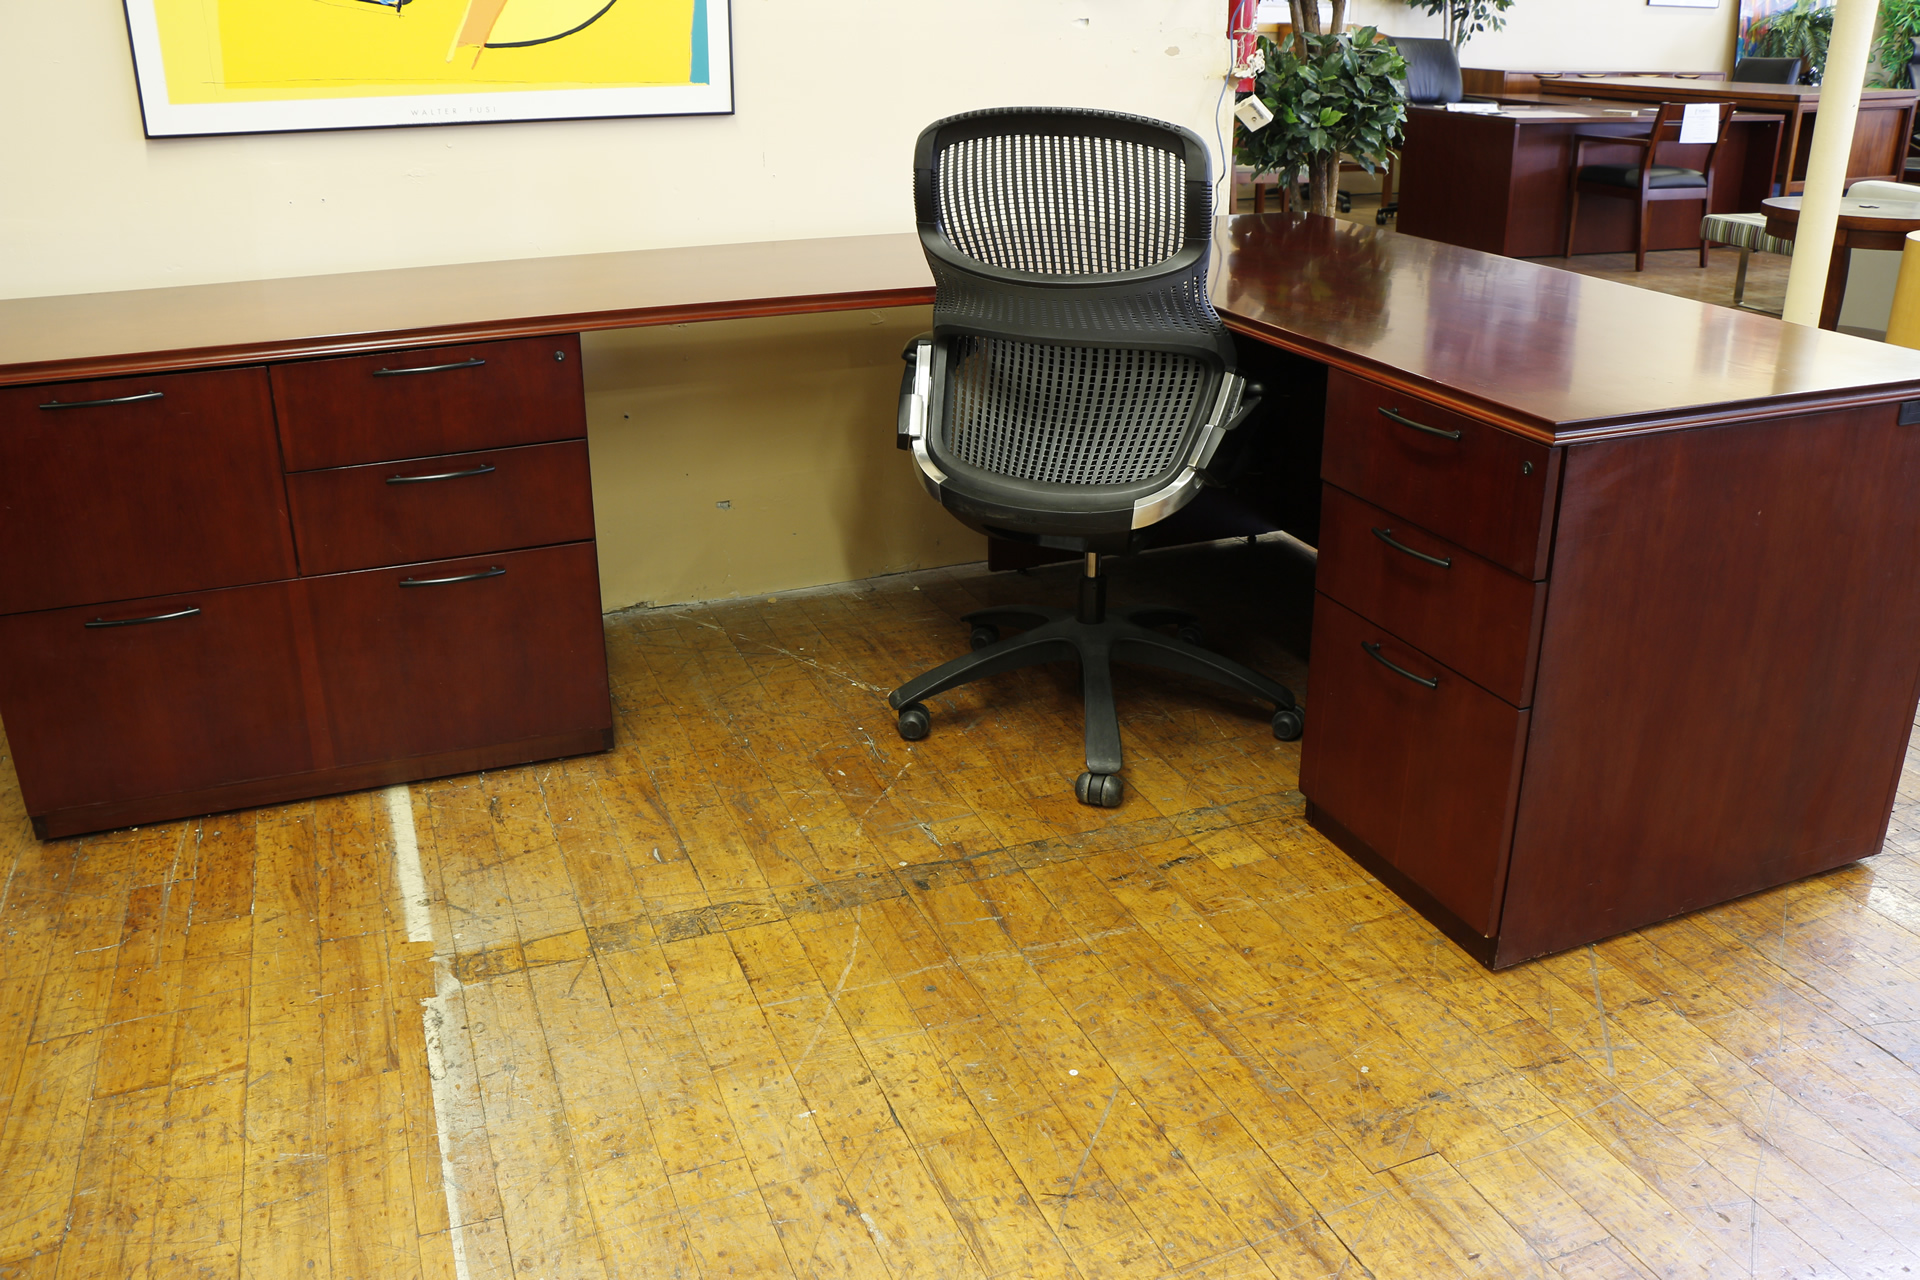 peartreeofficefurniture_peartreeofficefurniture_mg_4219.jpg